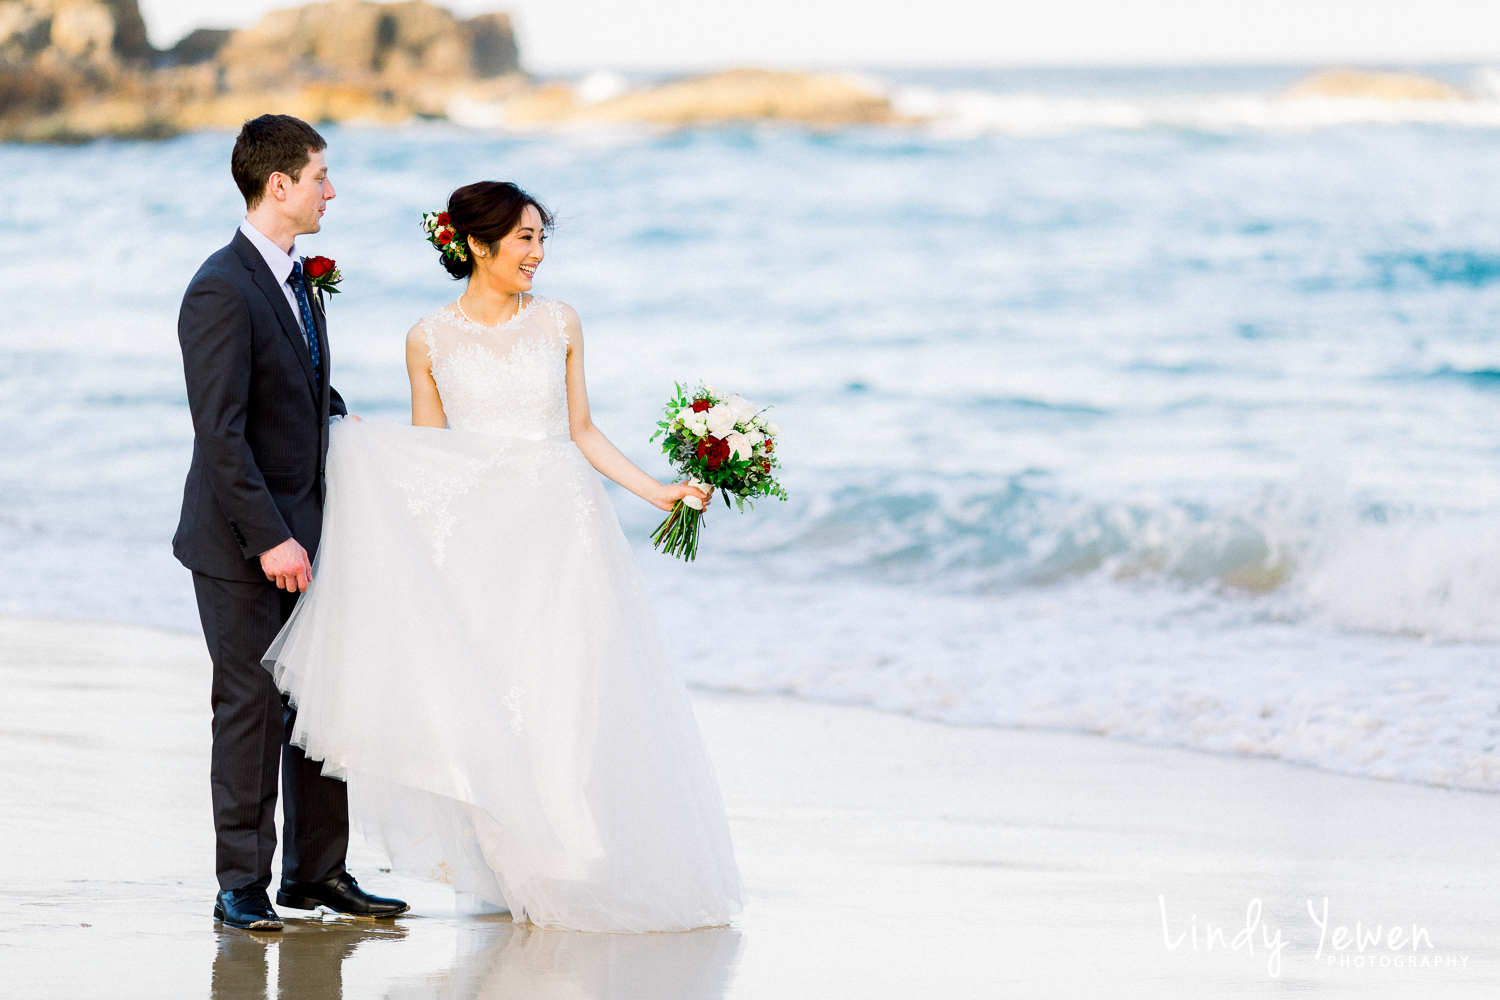 Sunshine-Beach-Weddings-Dimitrije-Maria 208.jpg